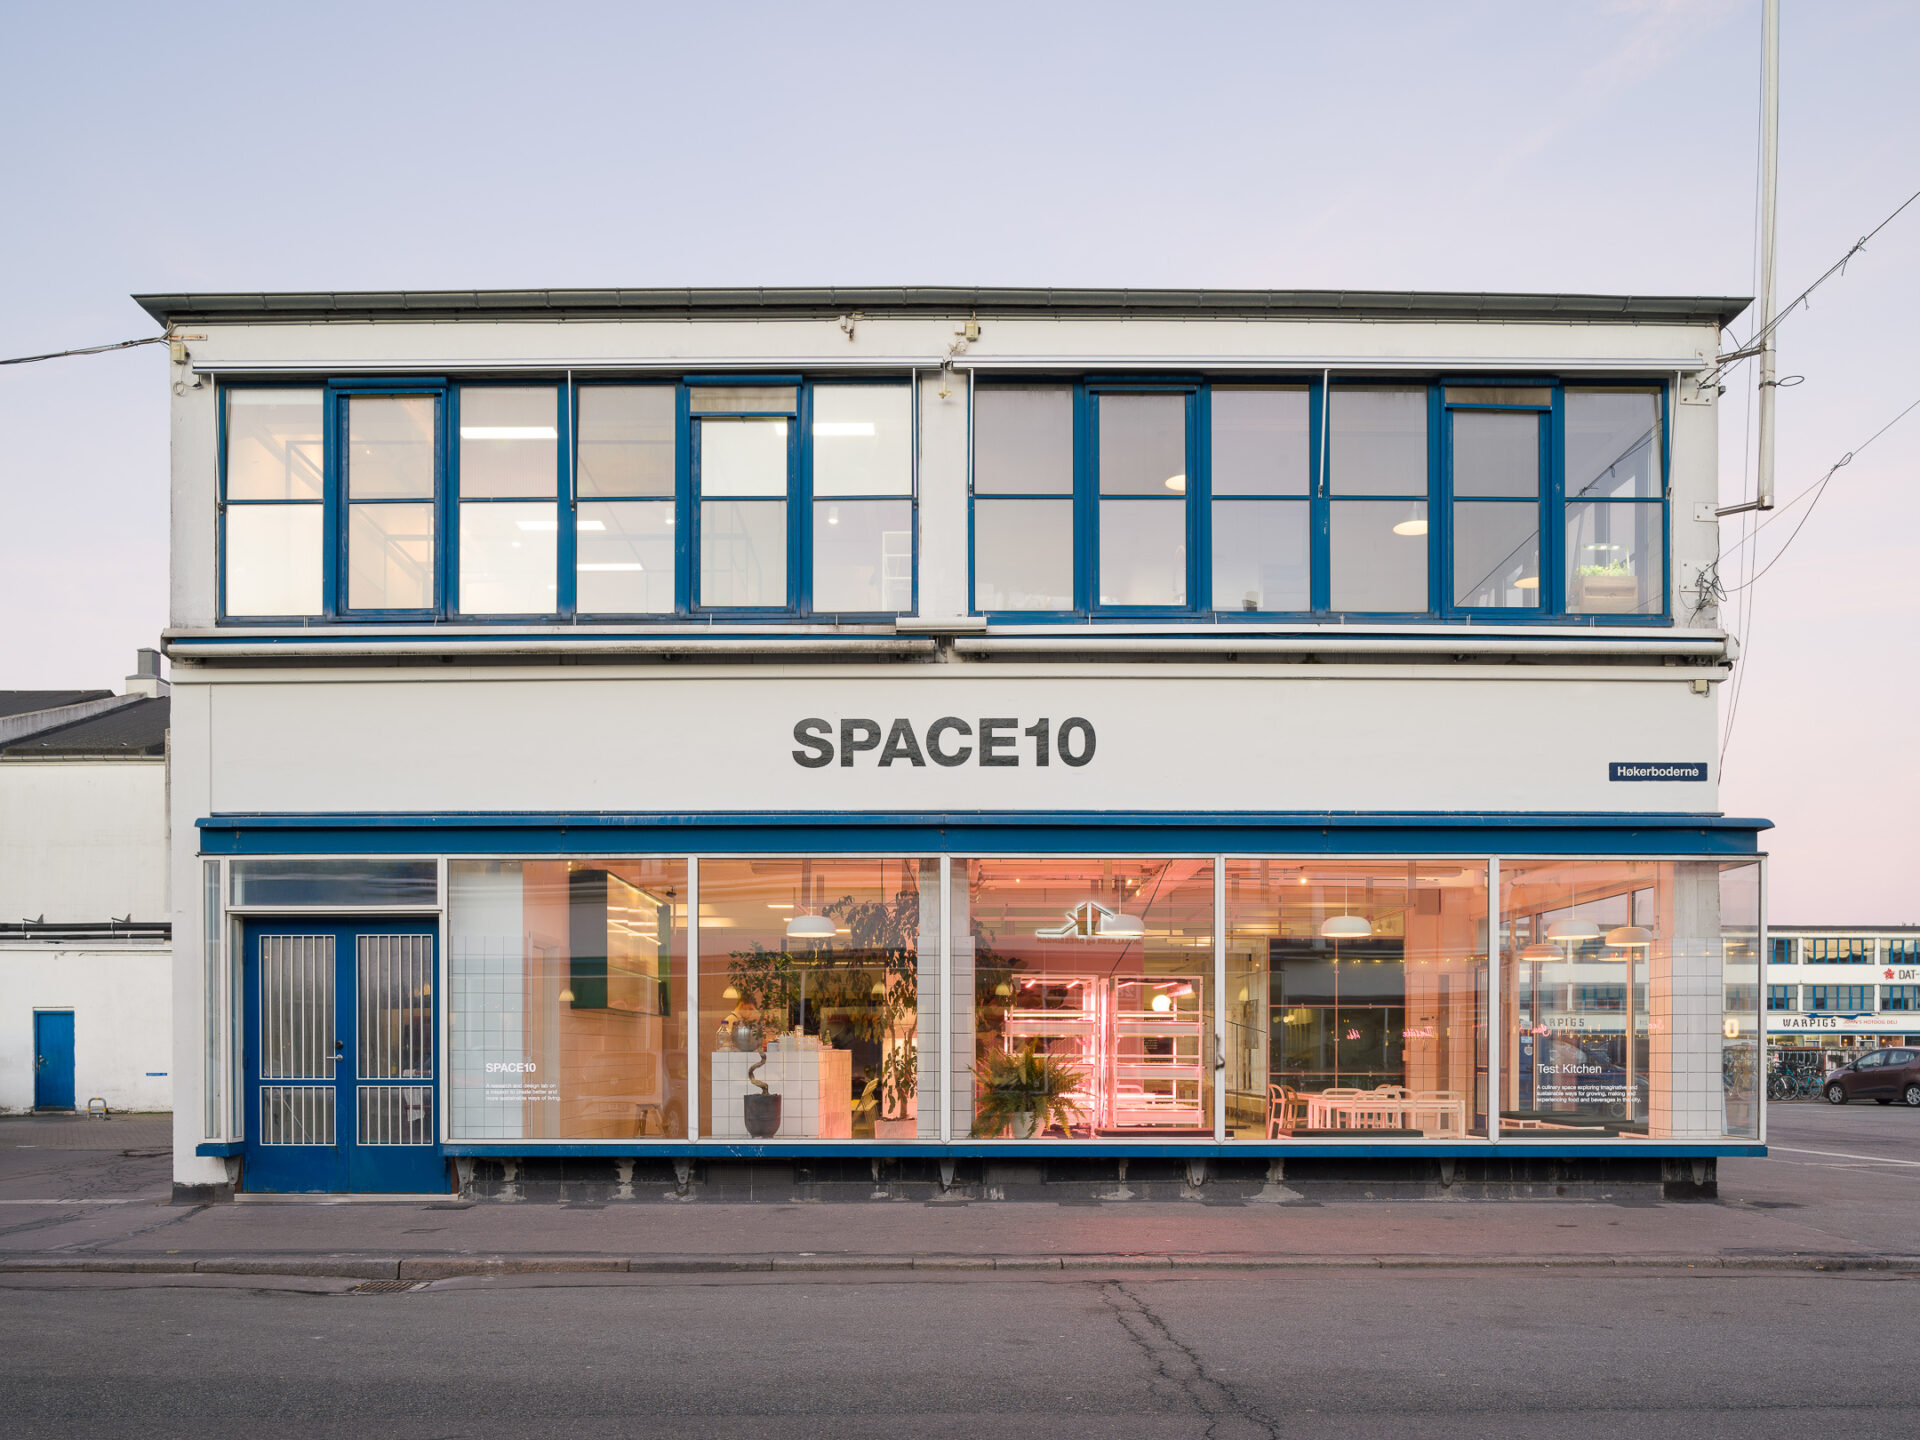 SPACE10-–-Rebuild-–-Web-–-Photo-by-Hampus-Berndtson-–-2_low-1920x1440.jpg